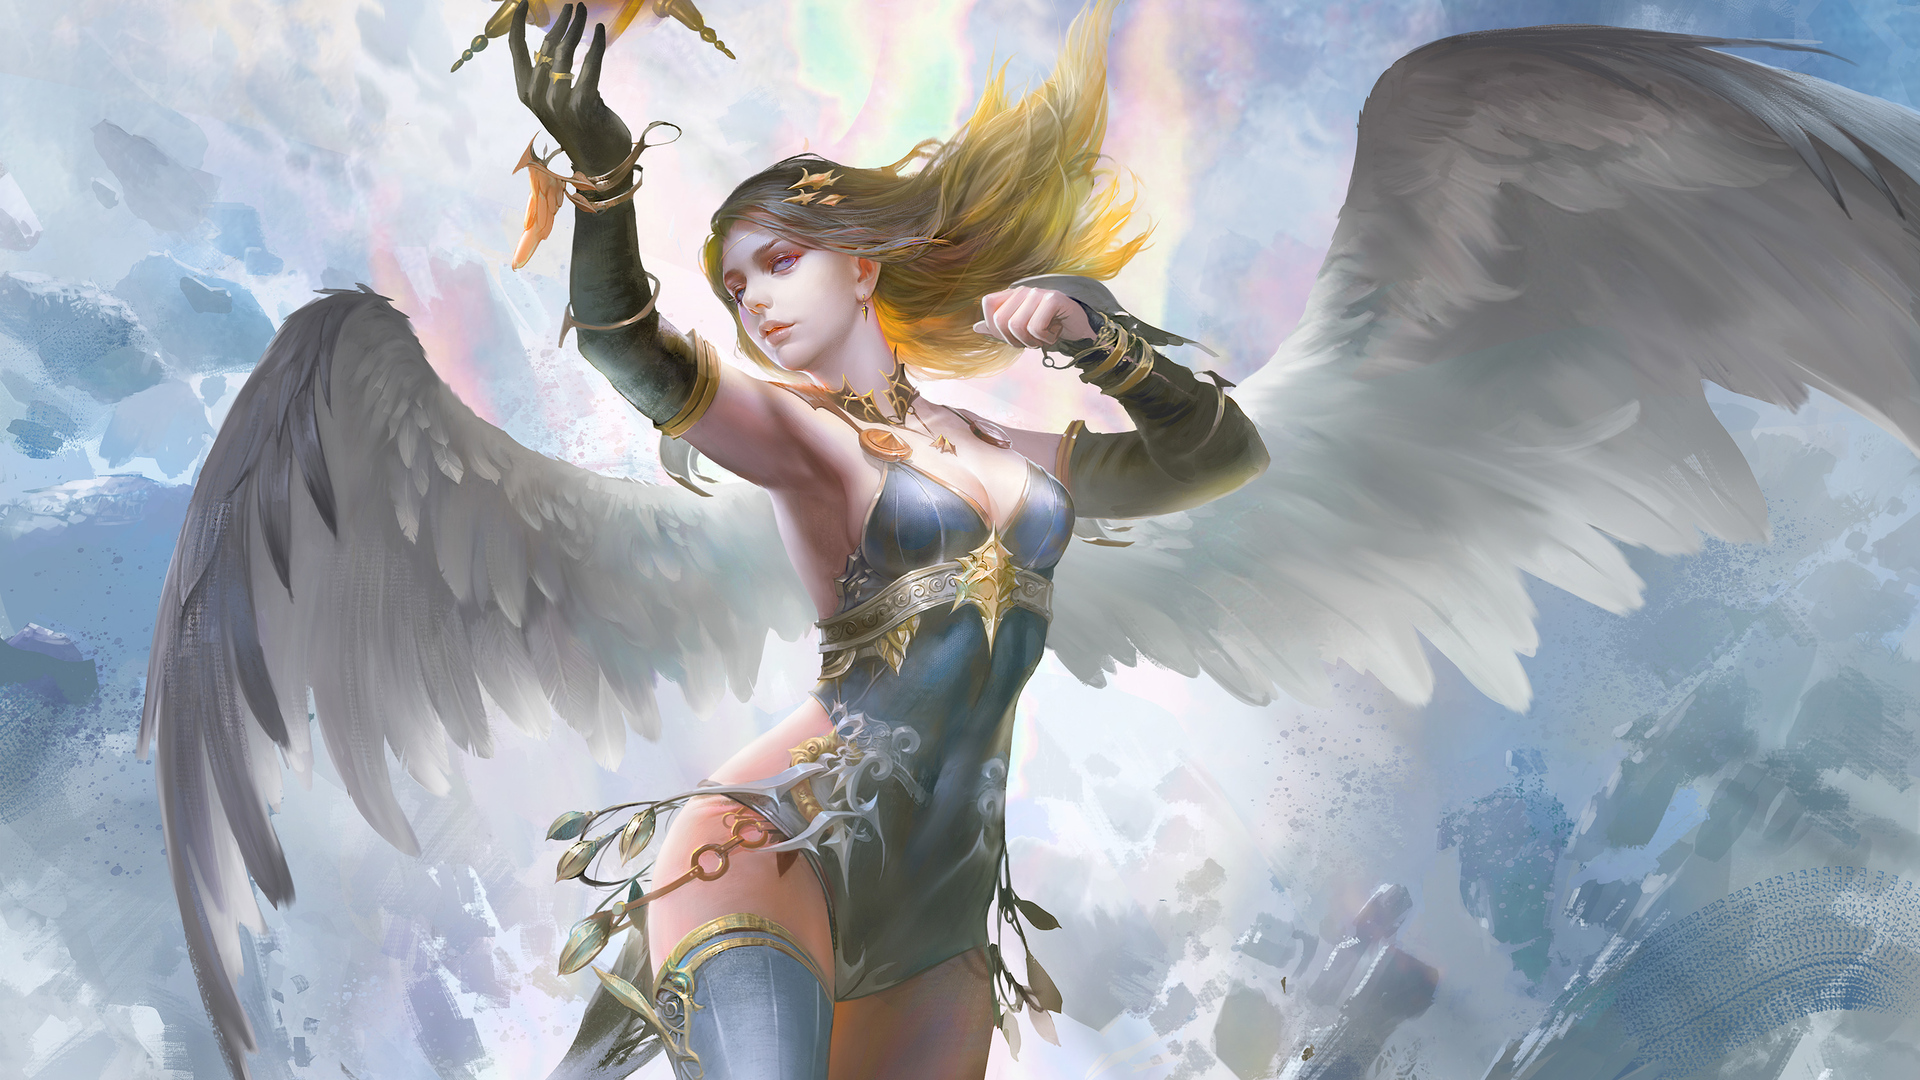 1920x1080 Fantasy Girl With Wings Laptop Full HD 1080P HD ...